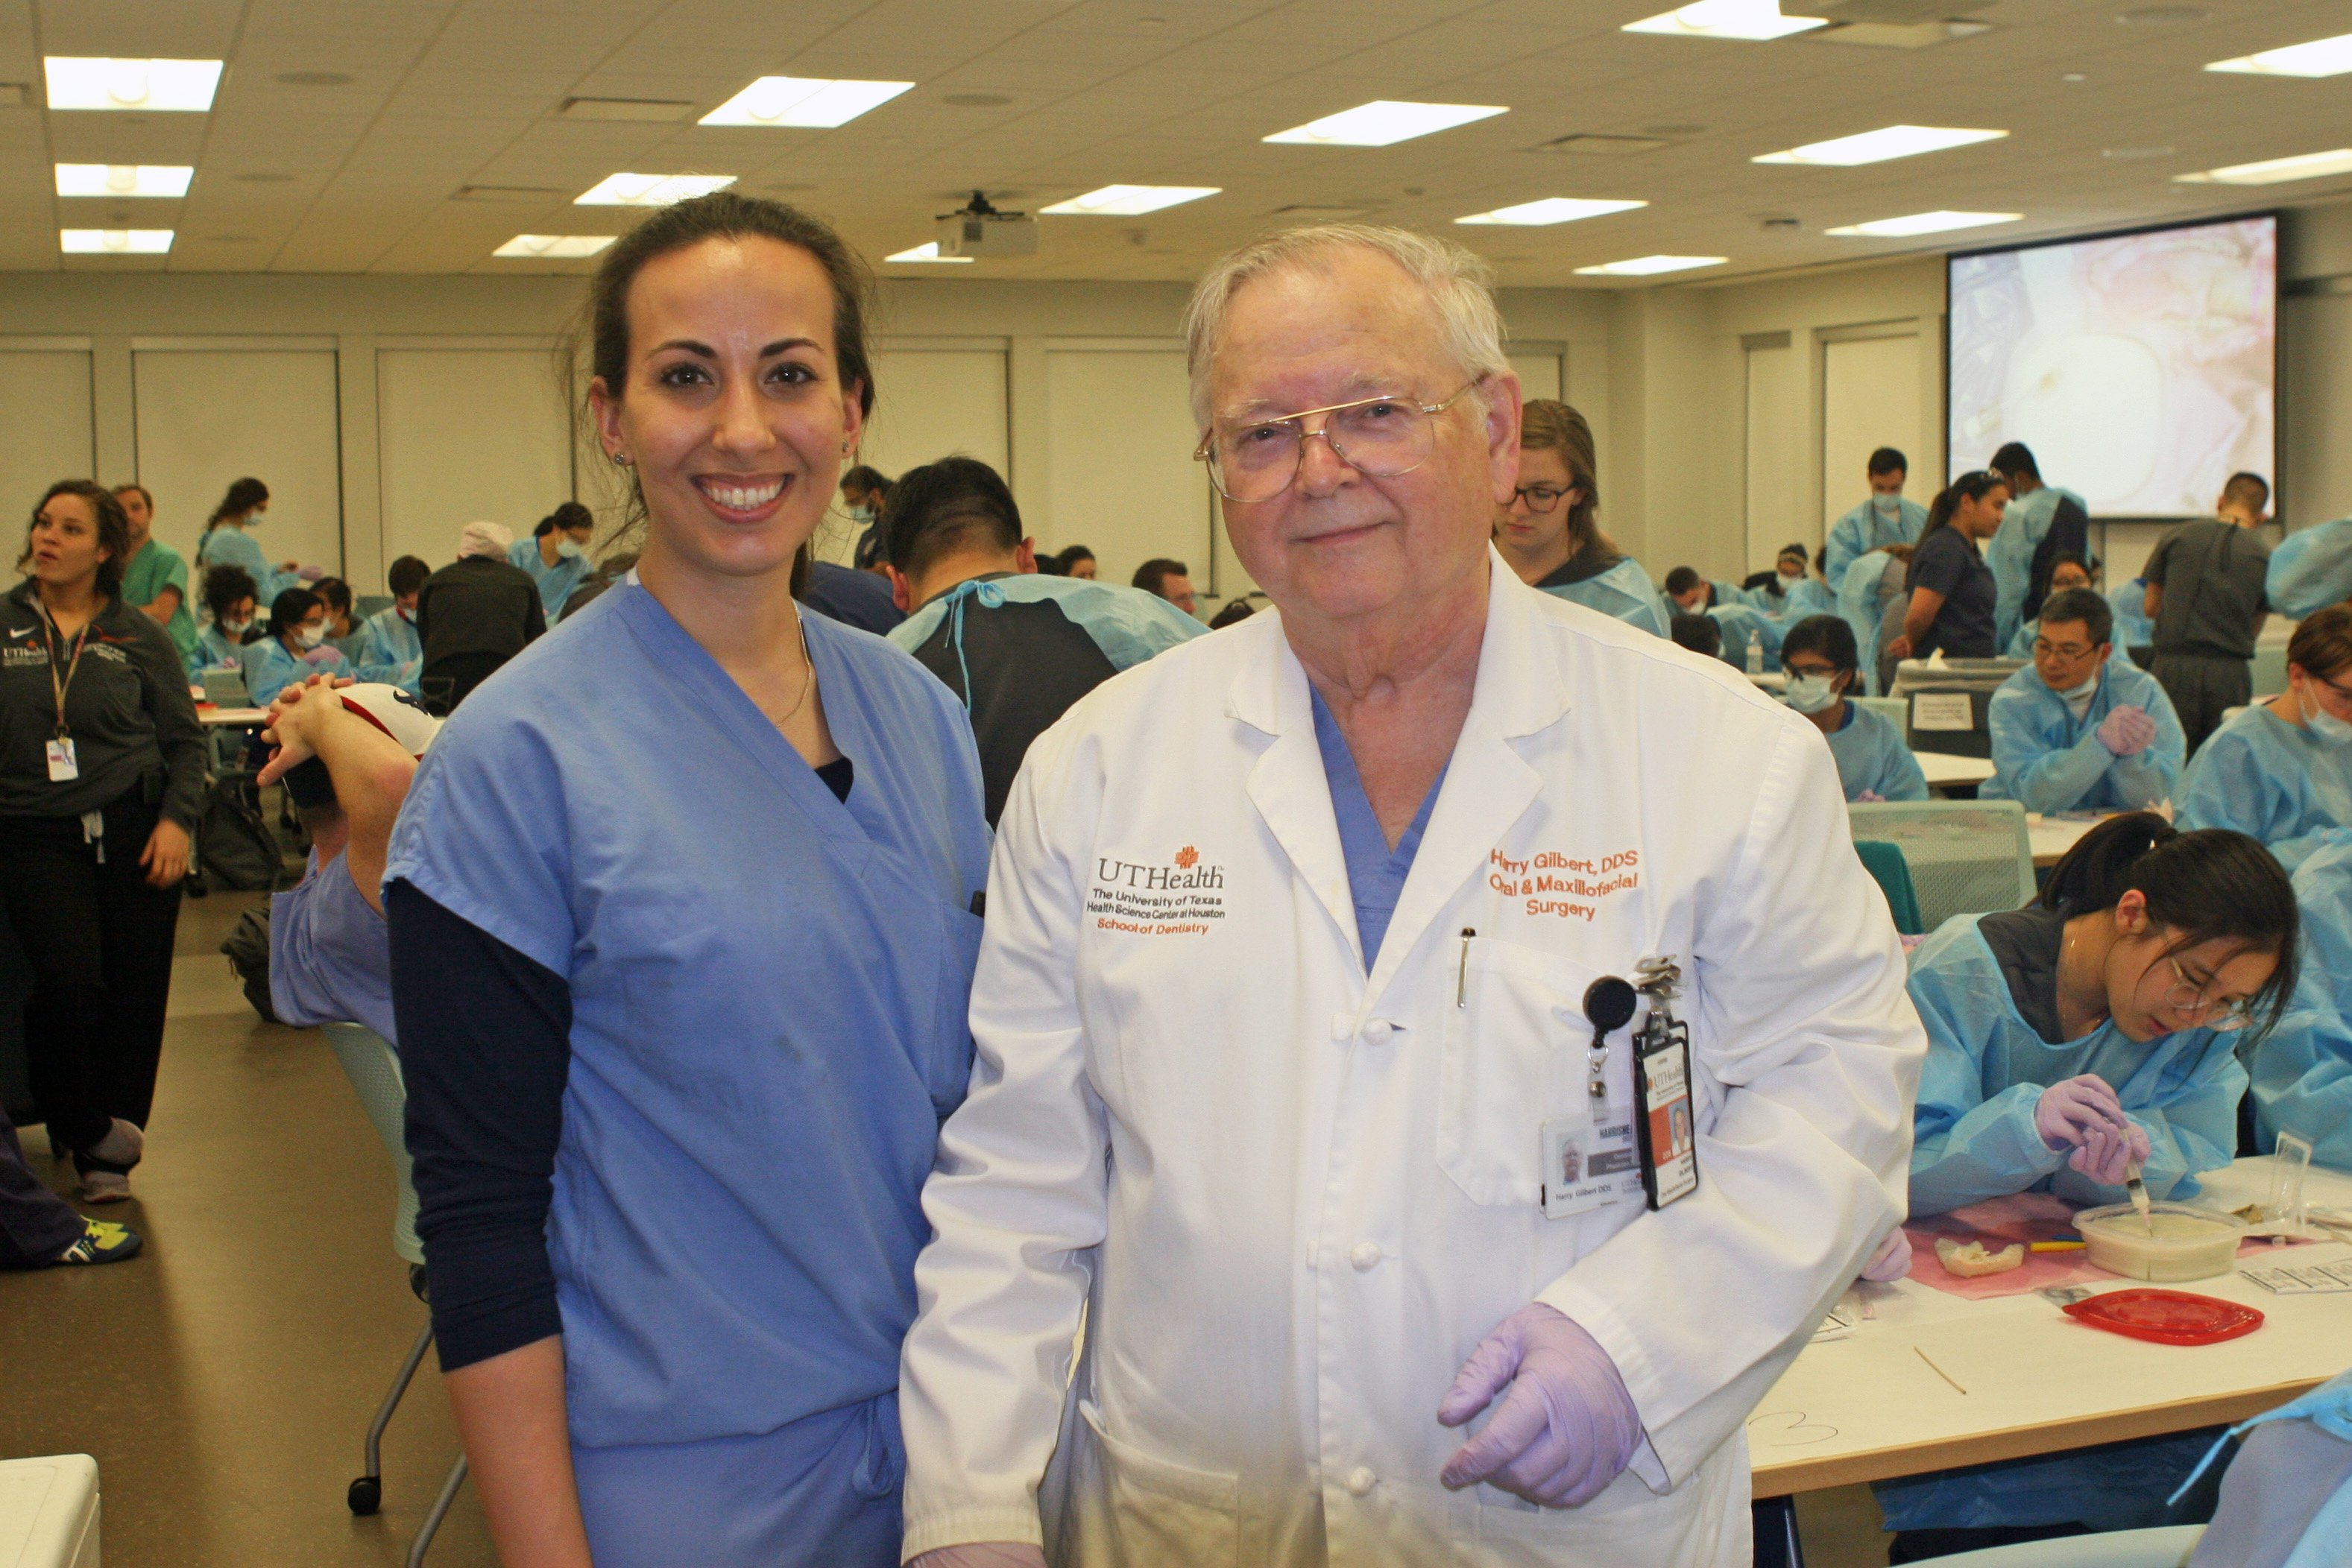 Butler Society President Victoria Manon with Harry D. Gilbert, DDS, professor in the Department of Oral and Maxillofacial Surgery.